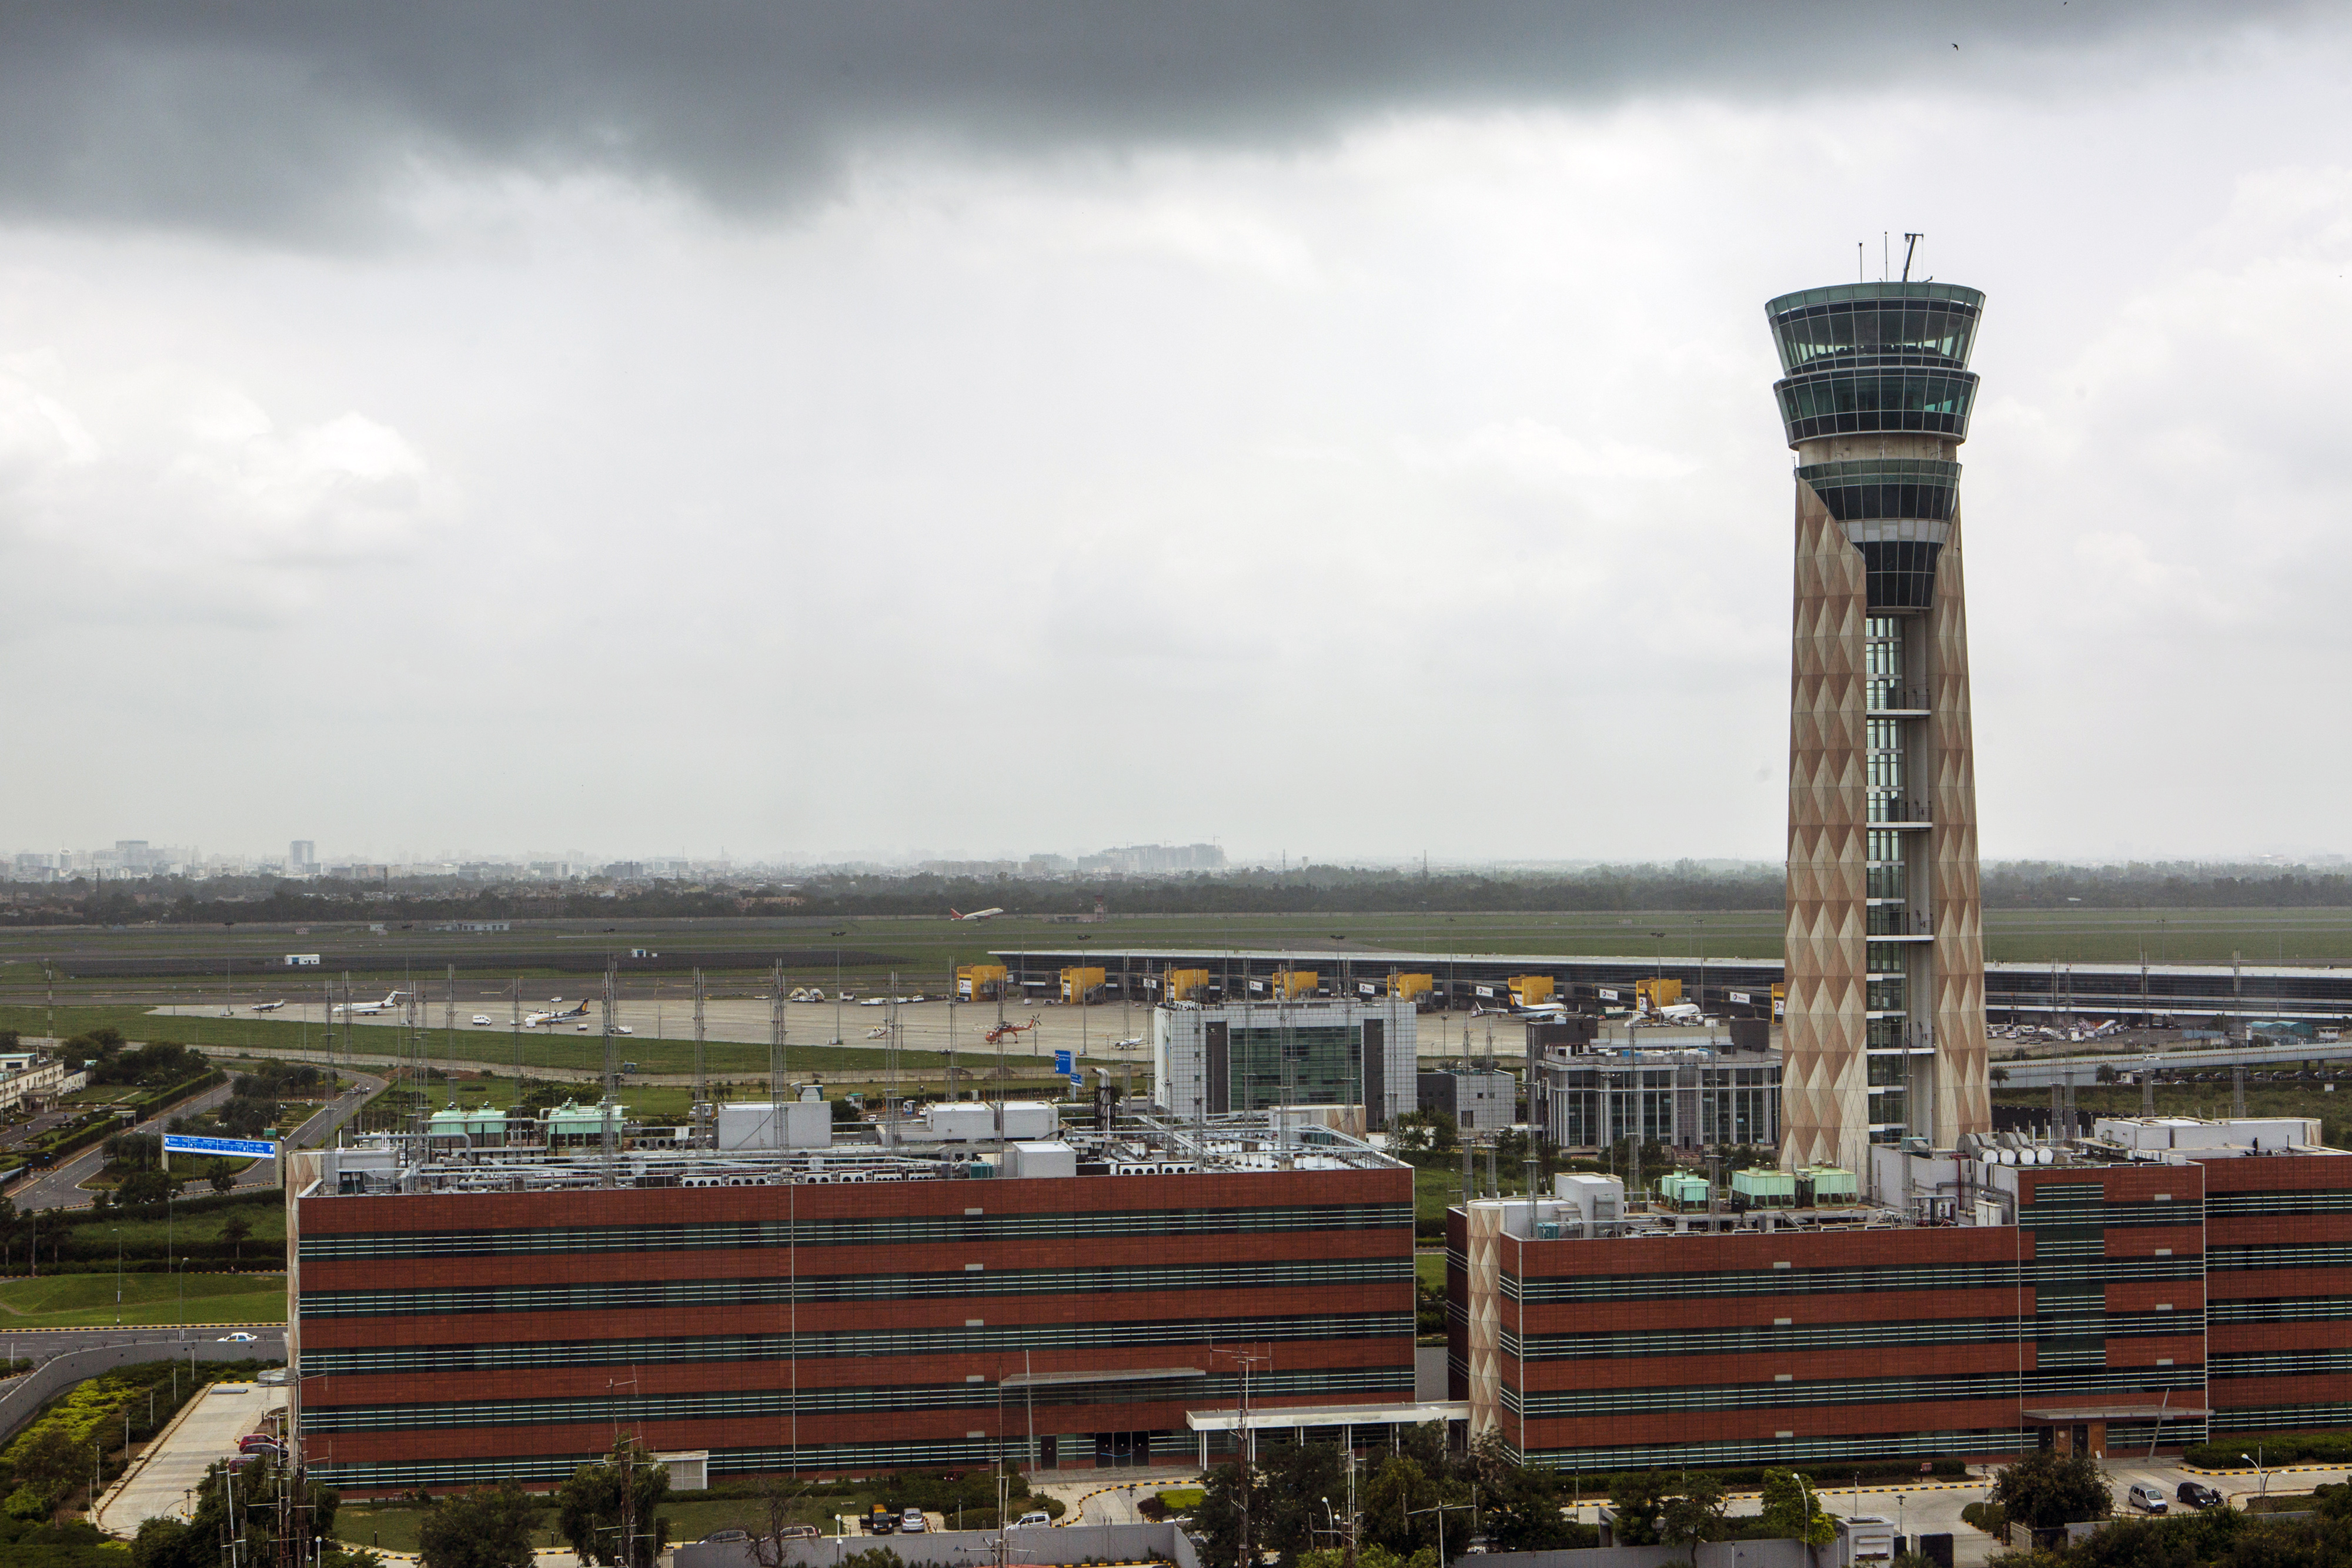 Delhi's IGIA second among airports with over 40m passengers: Survey